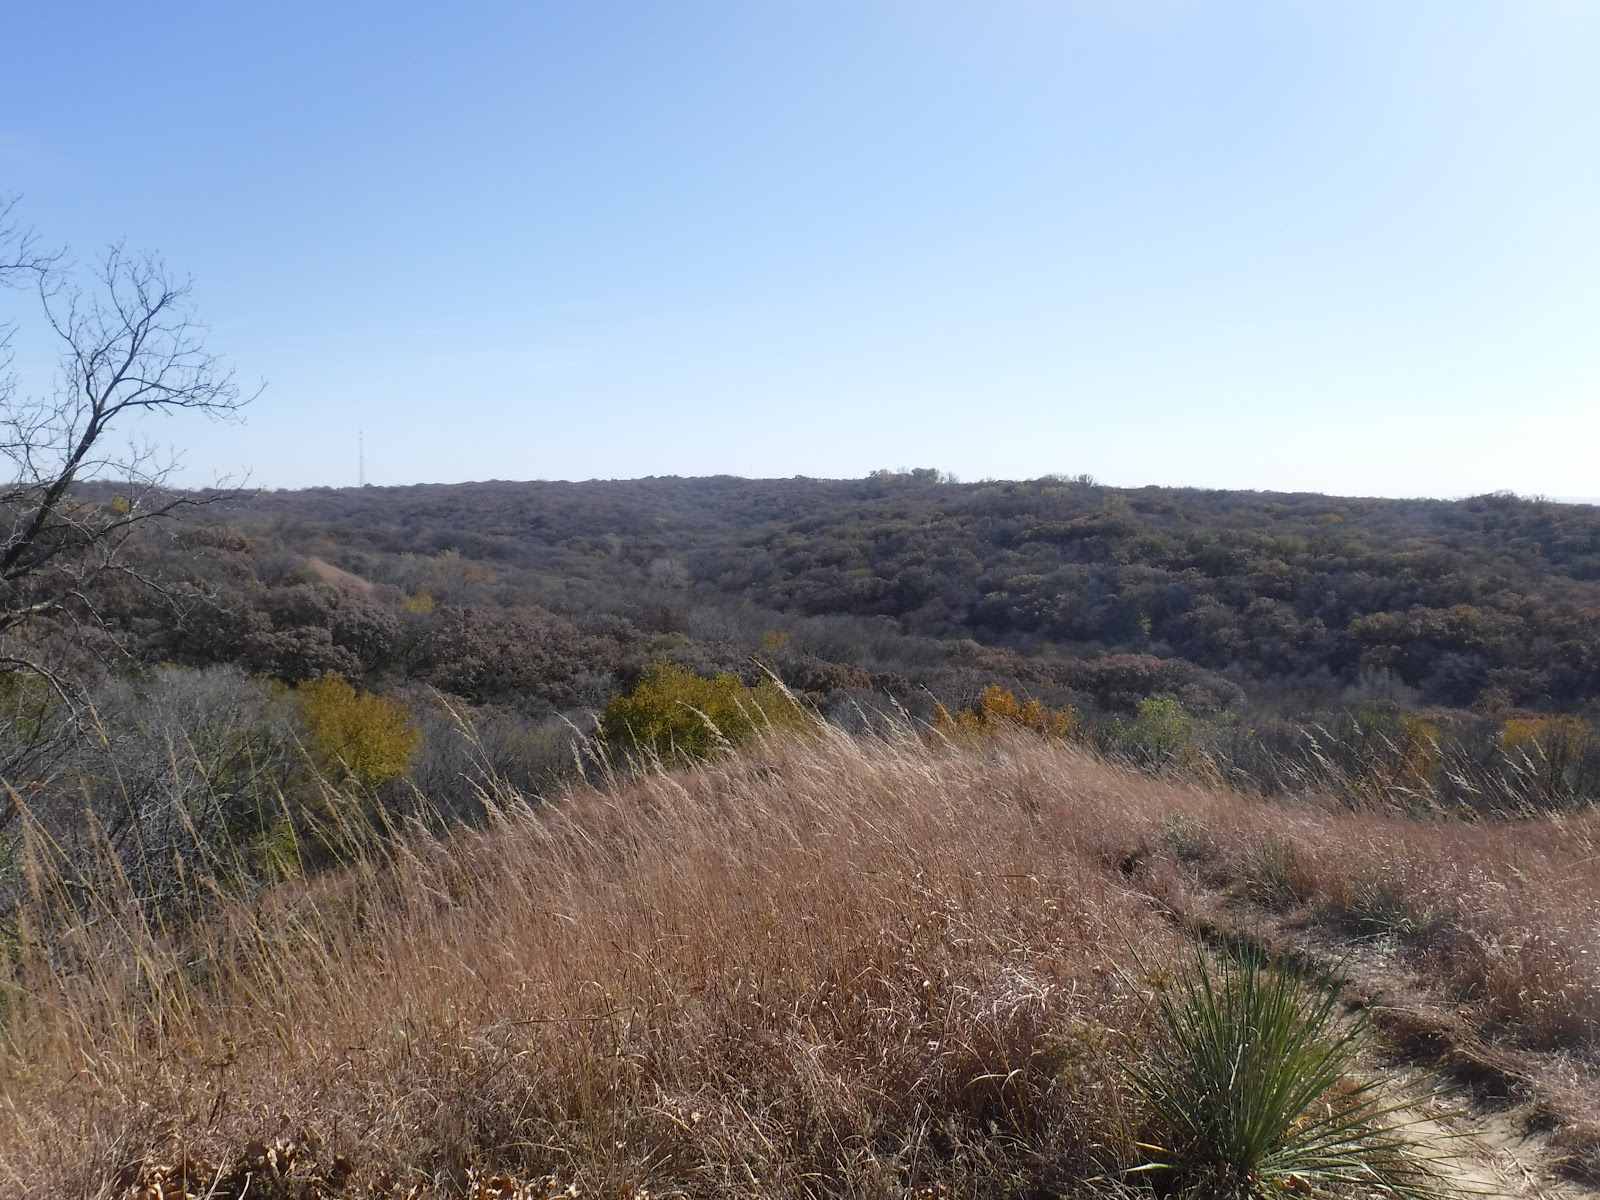 Things to do in Sioux City, Iowa - Hike the Stone State Park, a scenic park in the Loess Hills